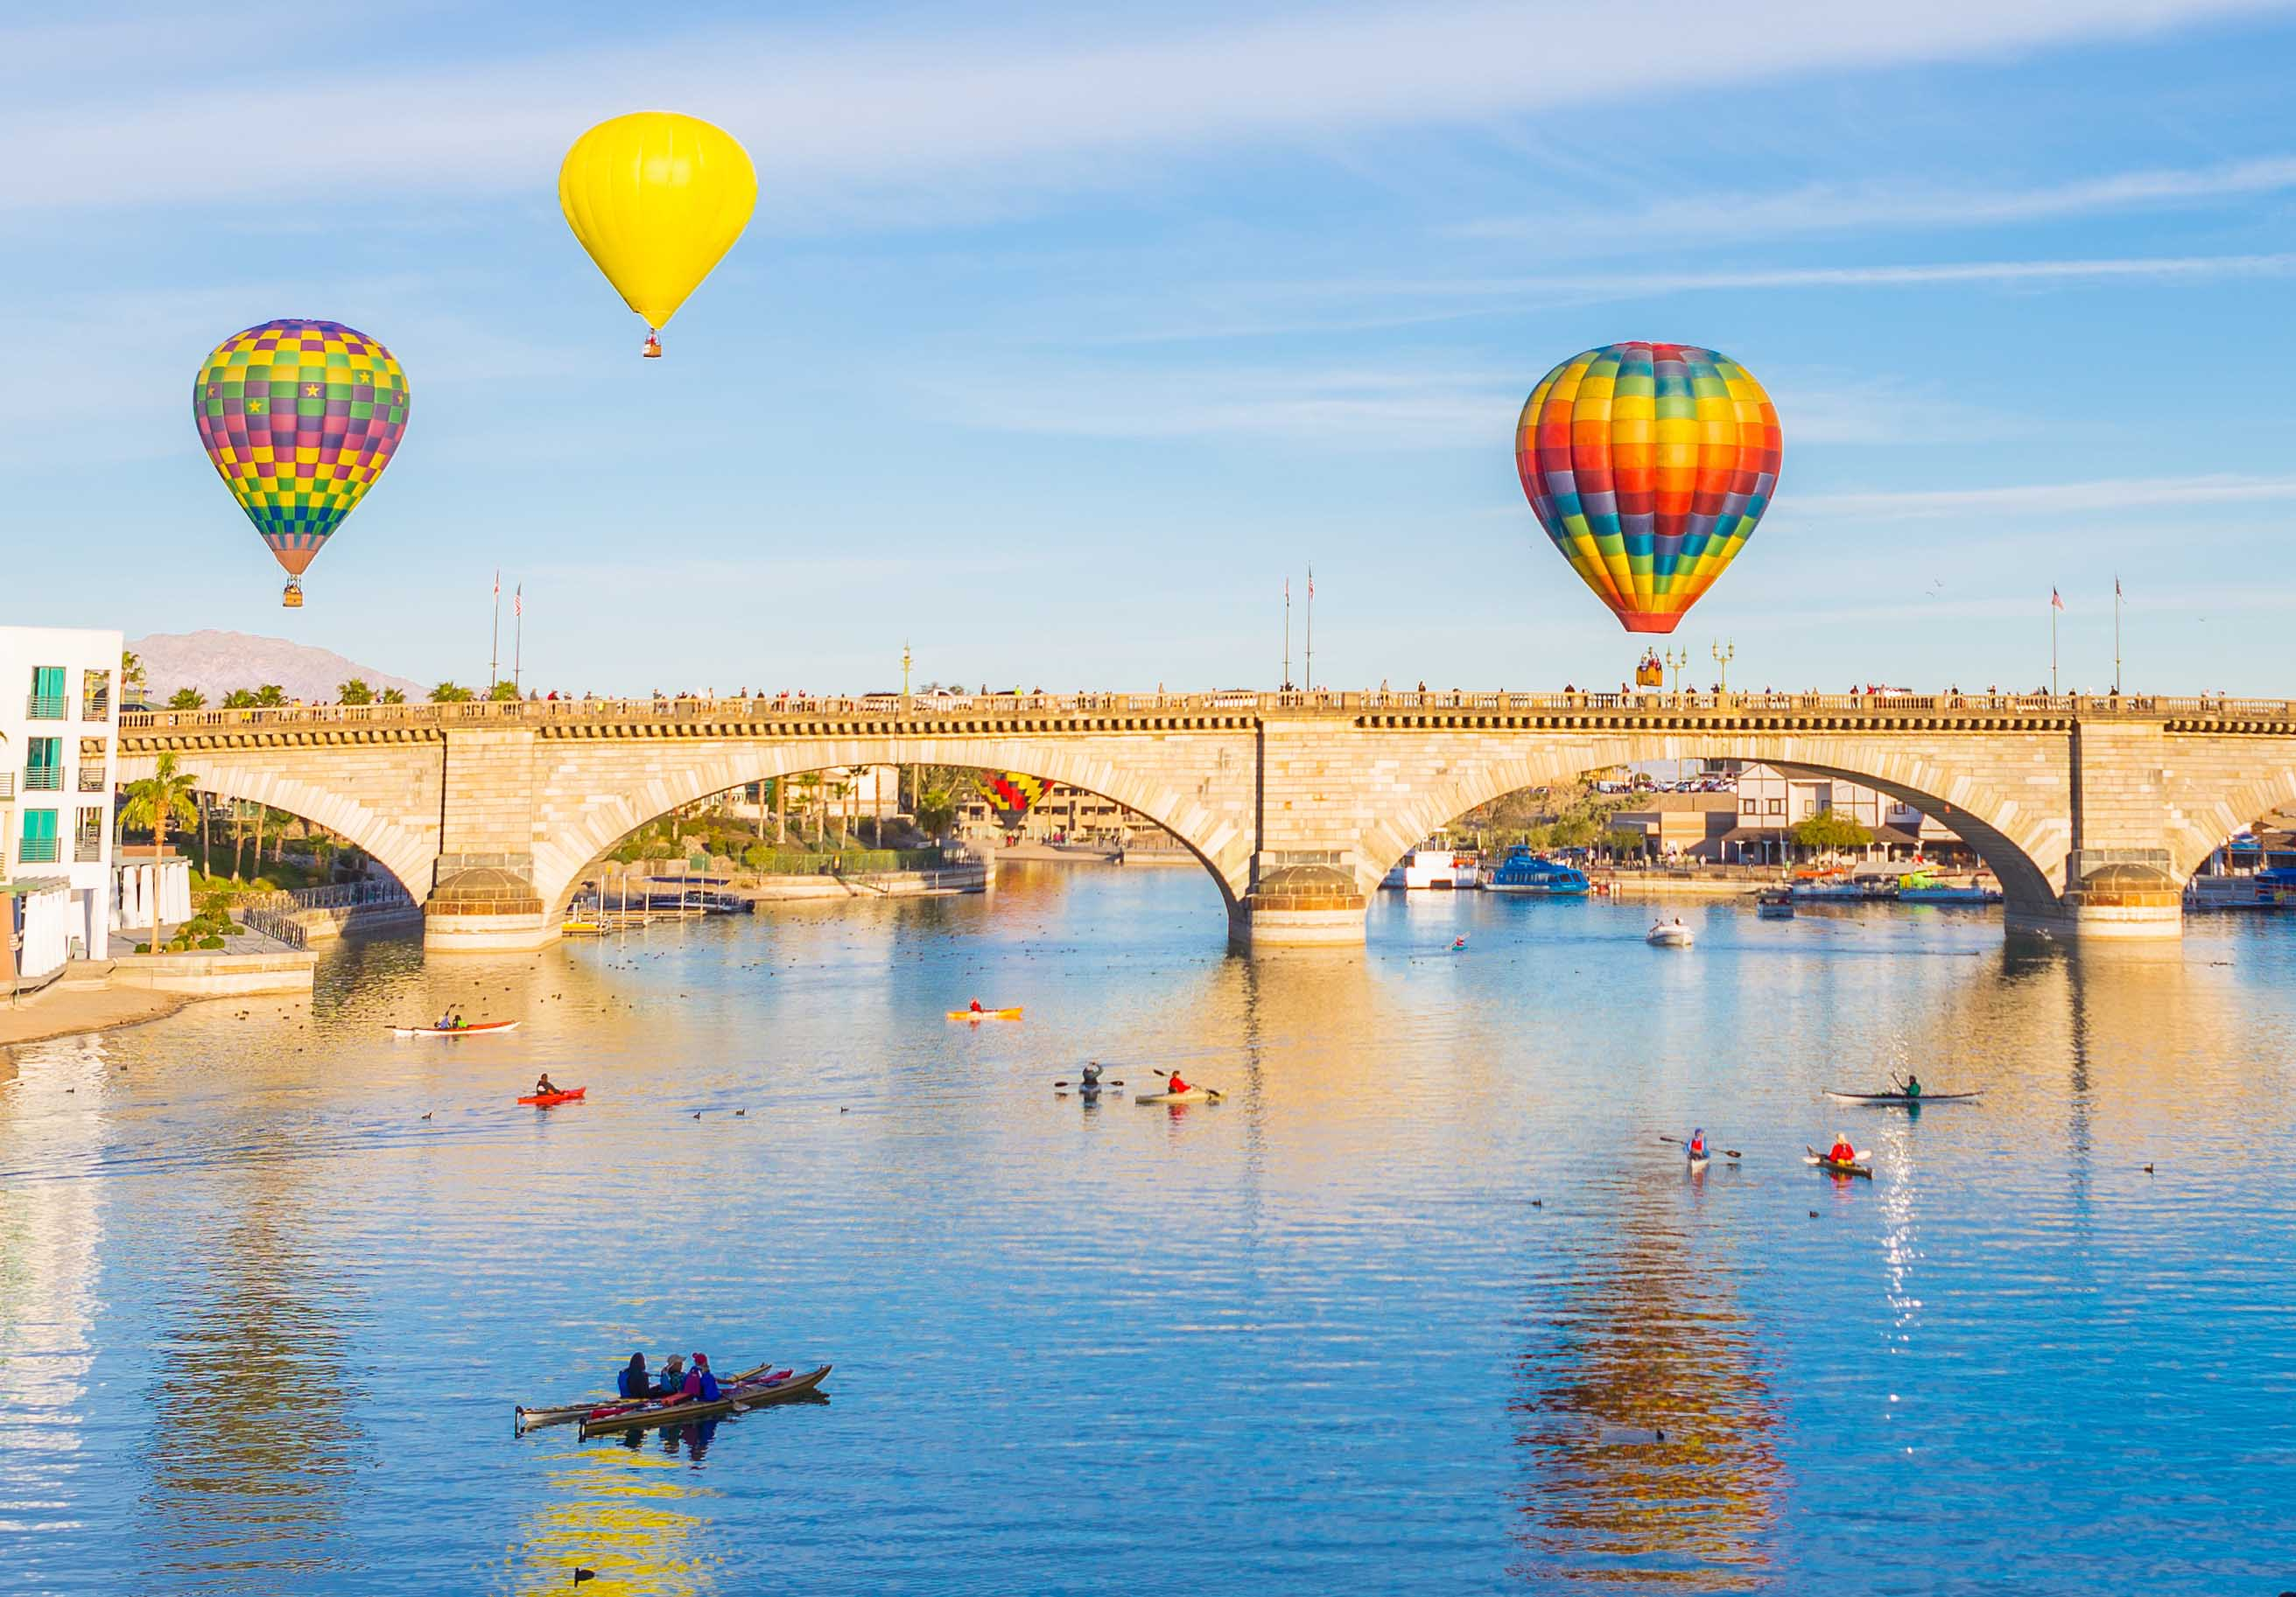 Lake Havasu balloons and kayaks.